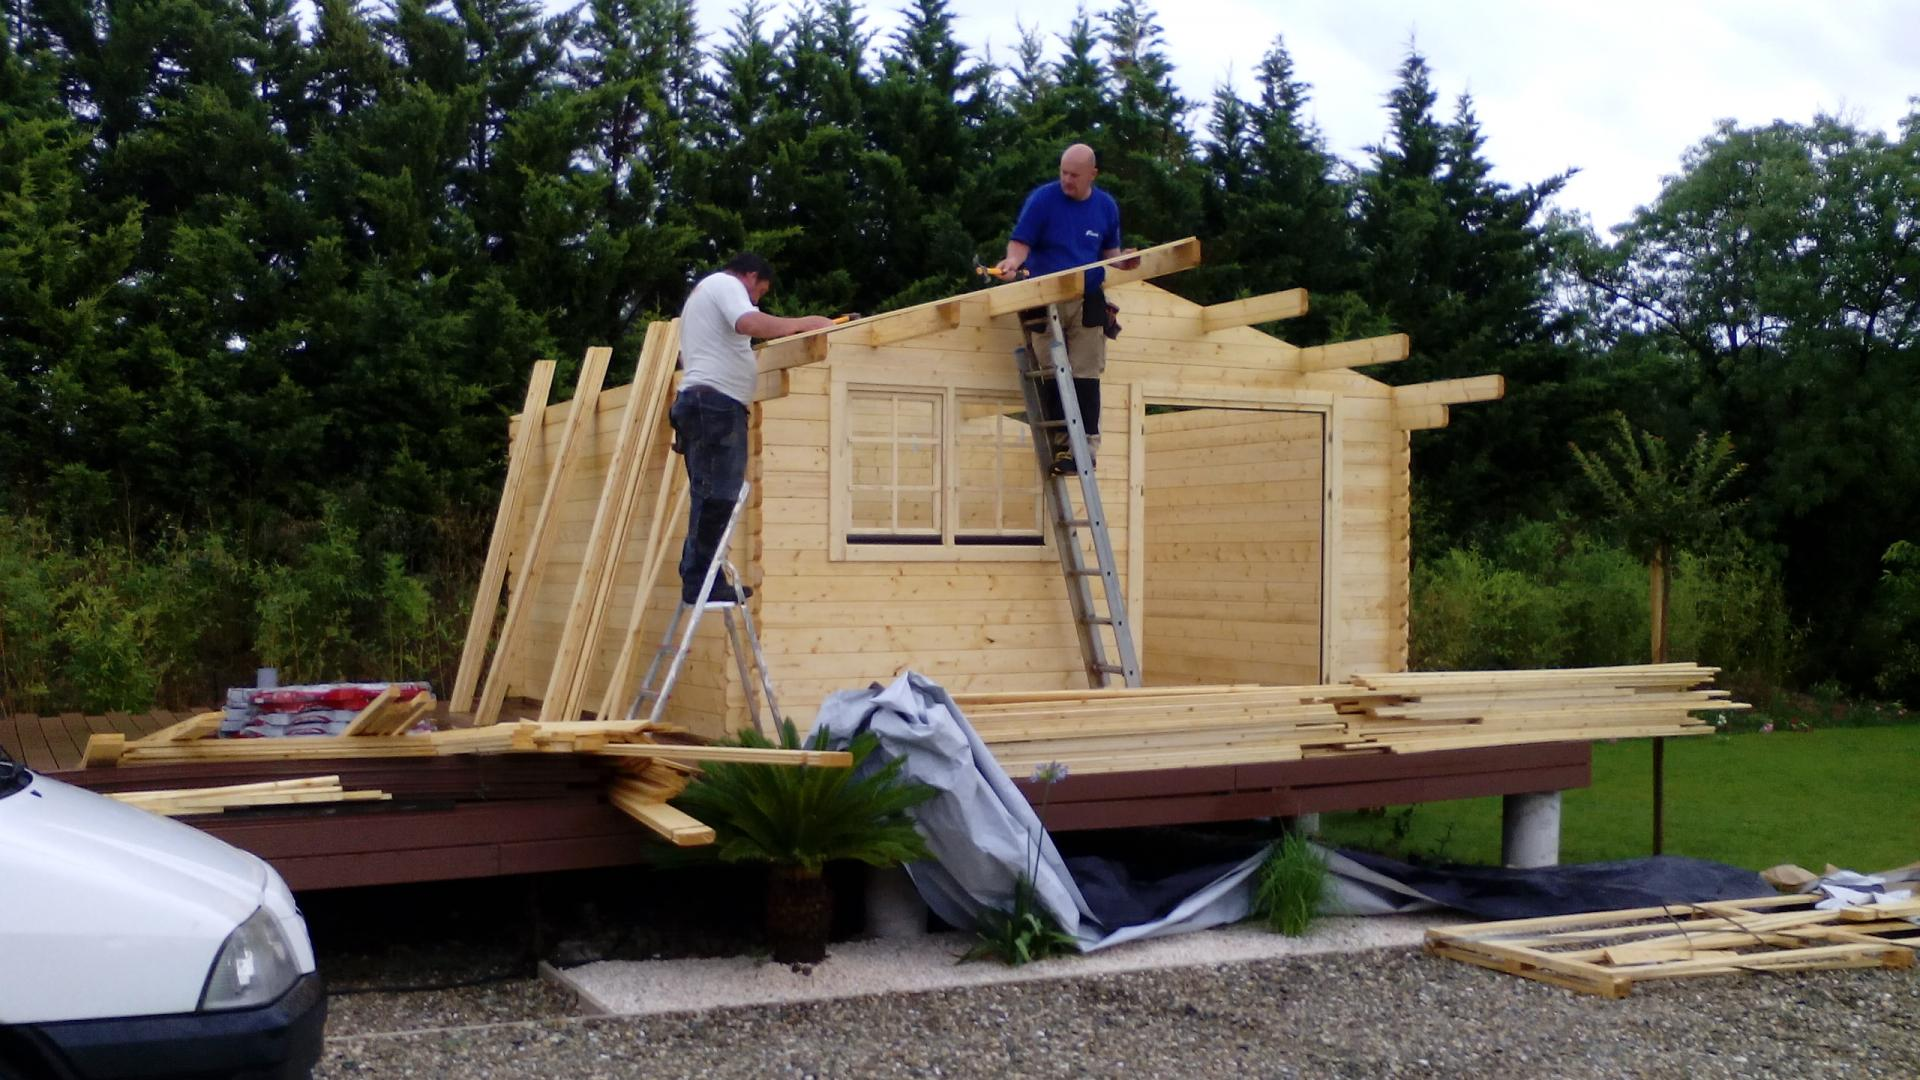 Fabricant de chalets de camping stmb construction for Construction en bois details